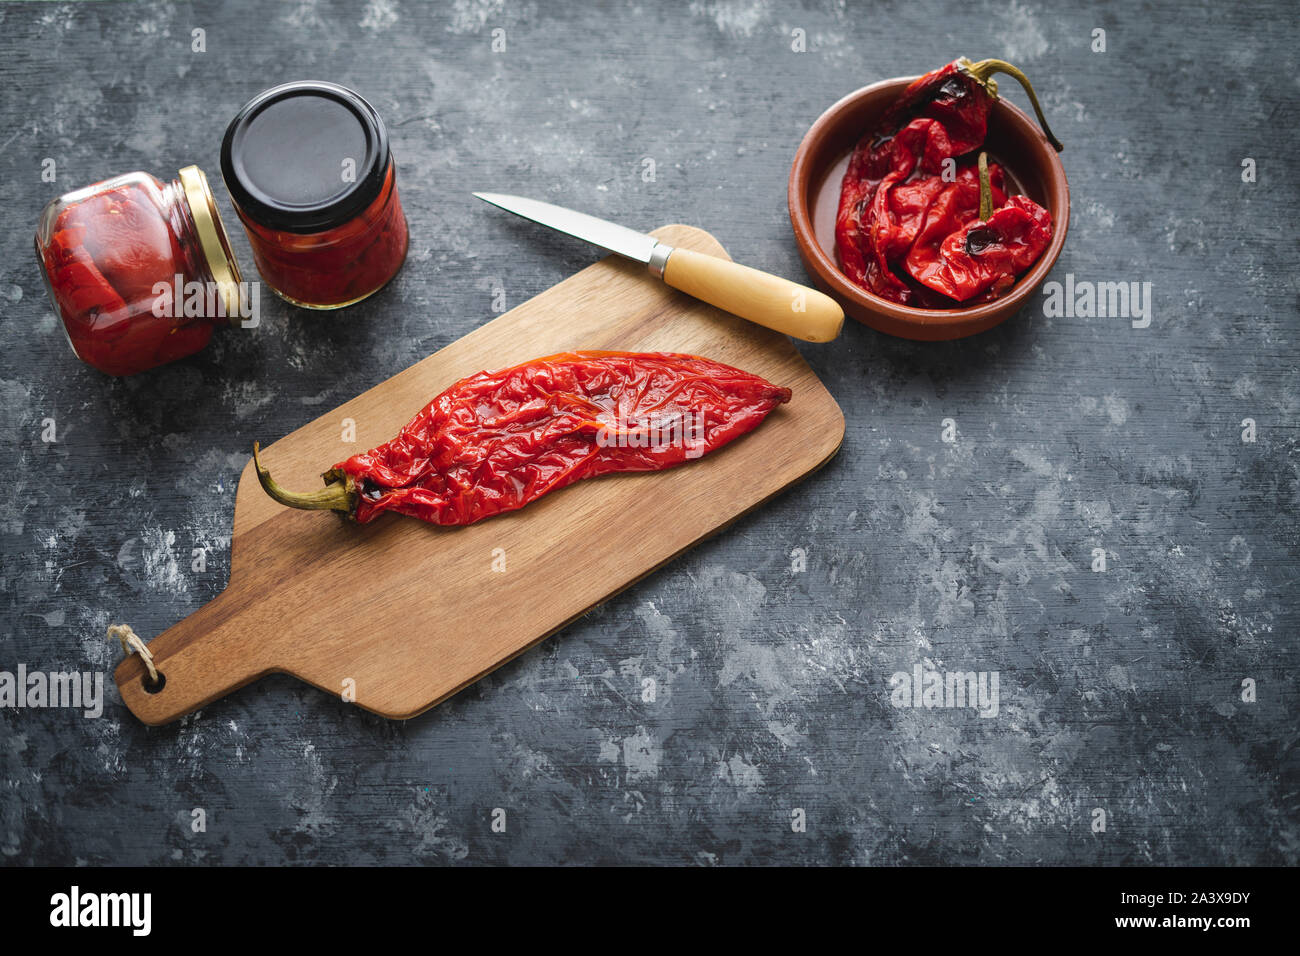 Preparing roasted red peppers for packaging. Stock Photo